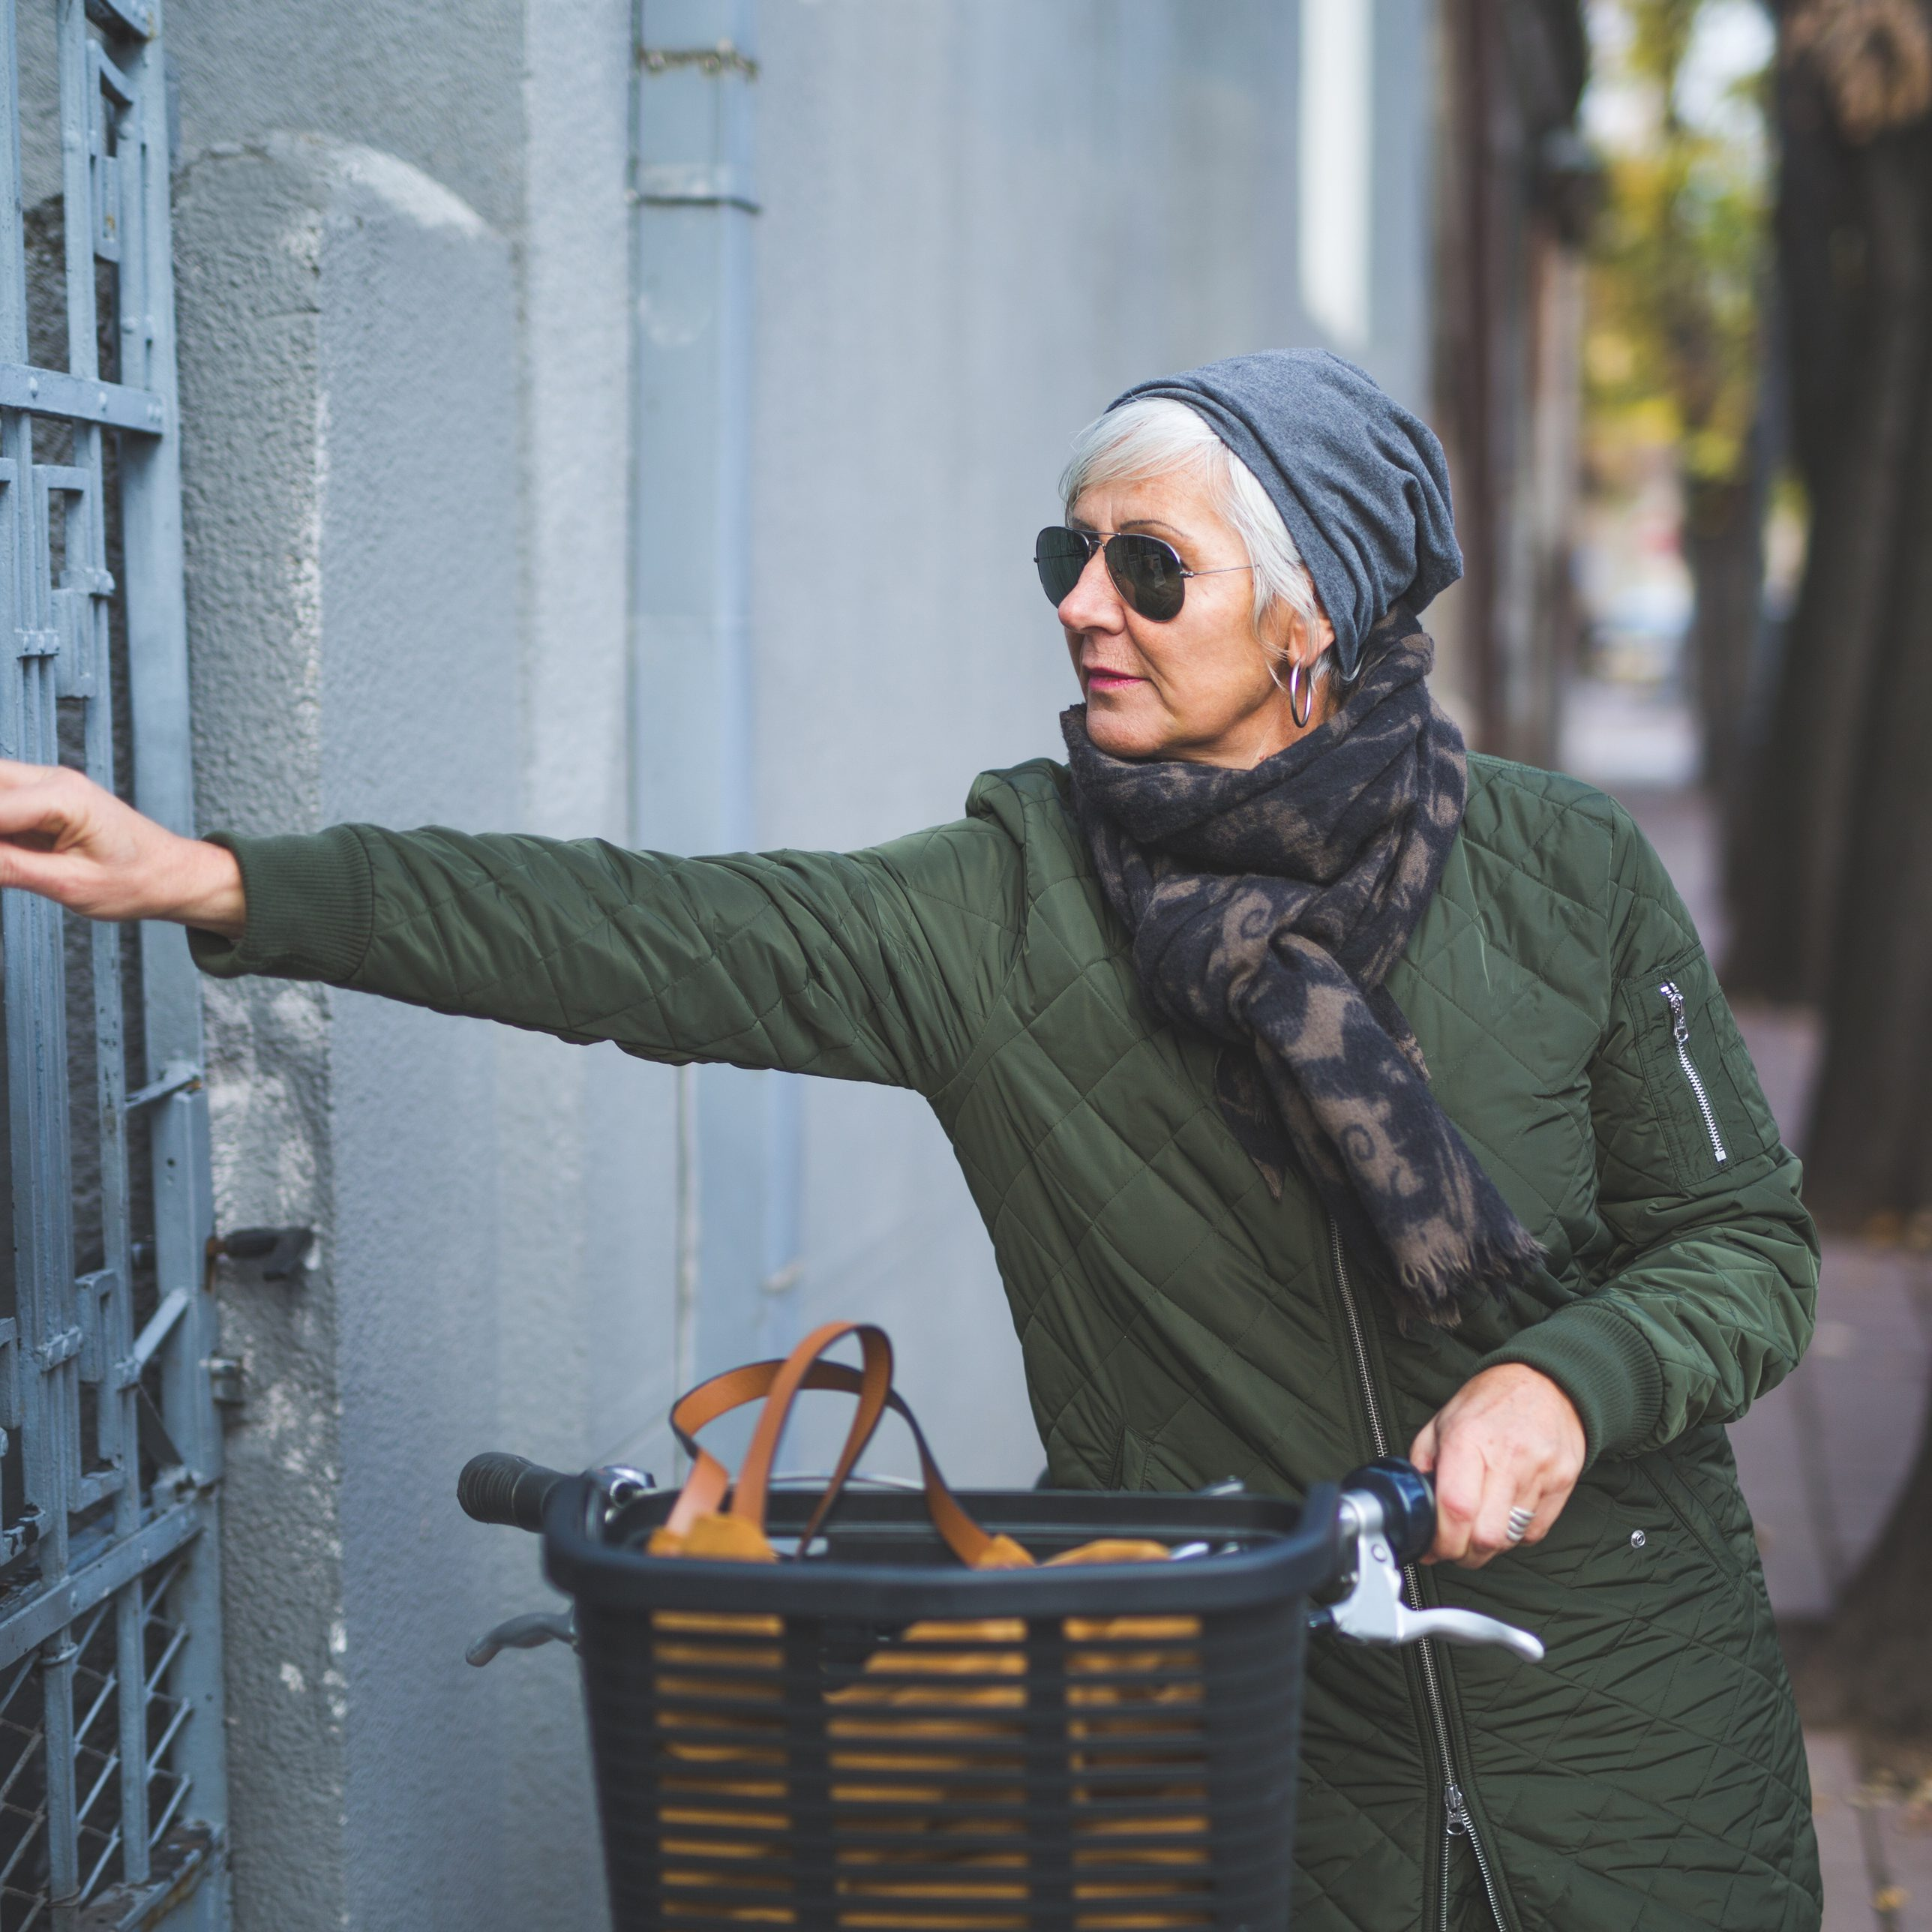 Senior woman arriving home with bicycle and taking mail out of mailbox